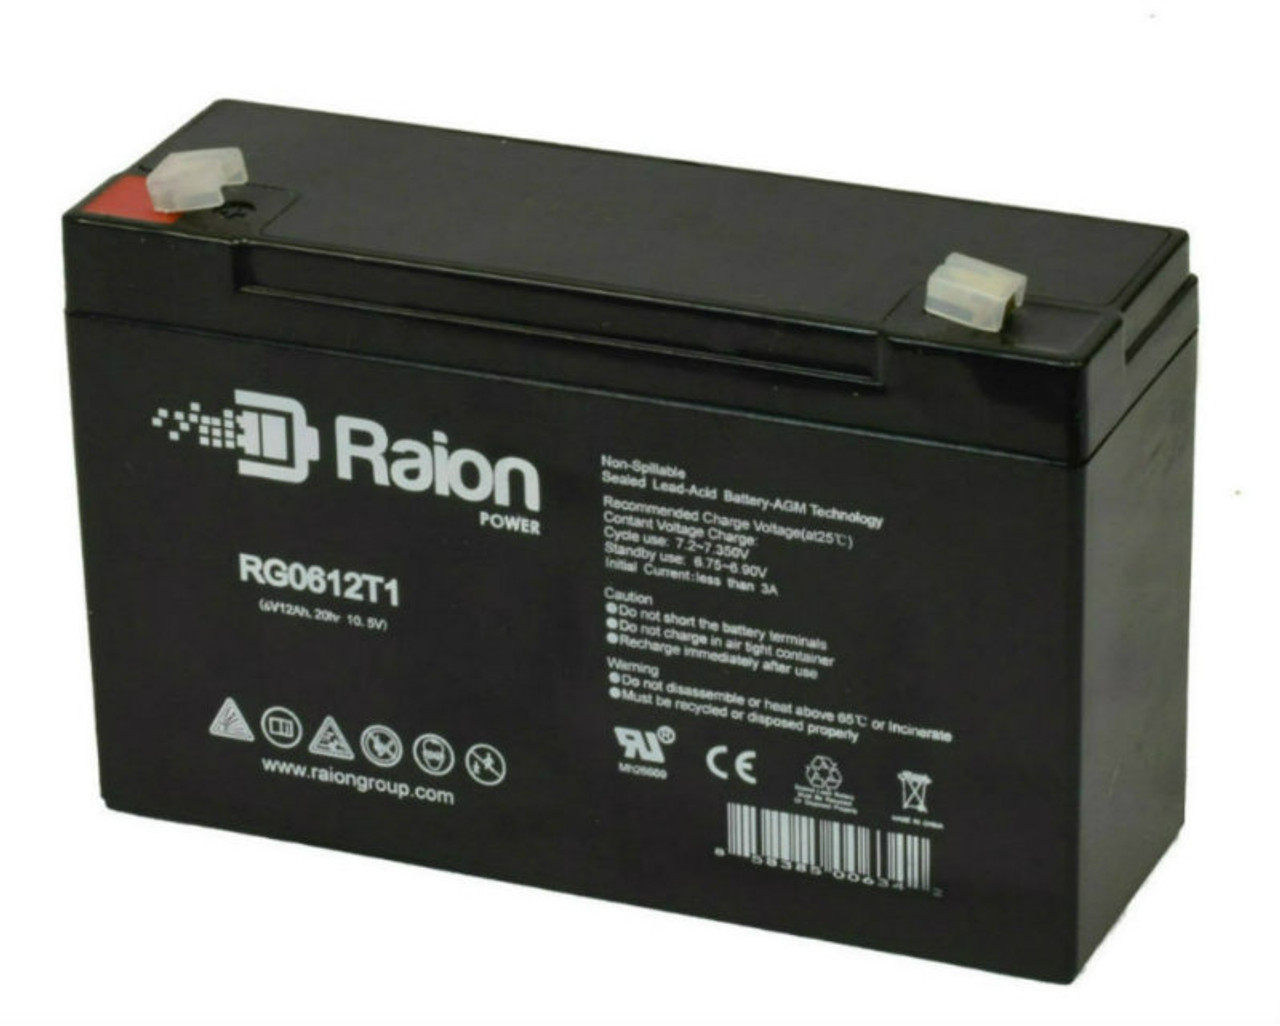 Raion Power RG06120T1 Replacement Battery Pack for Dynaray S18192 emergency light